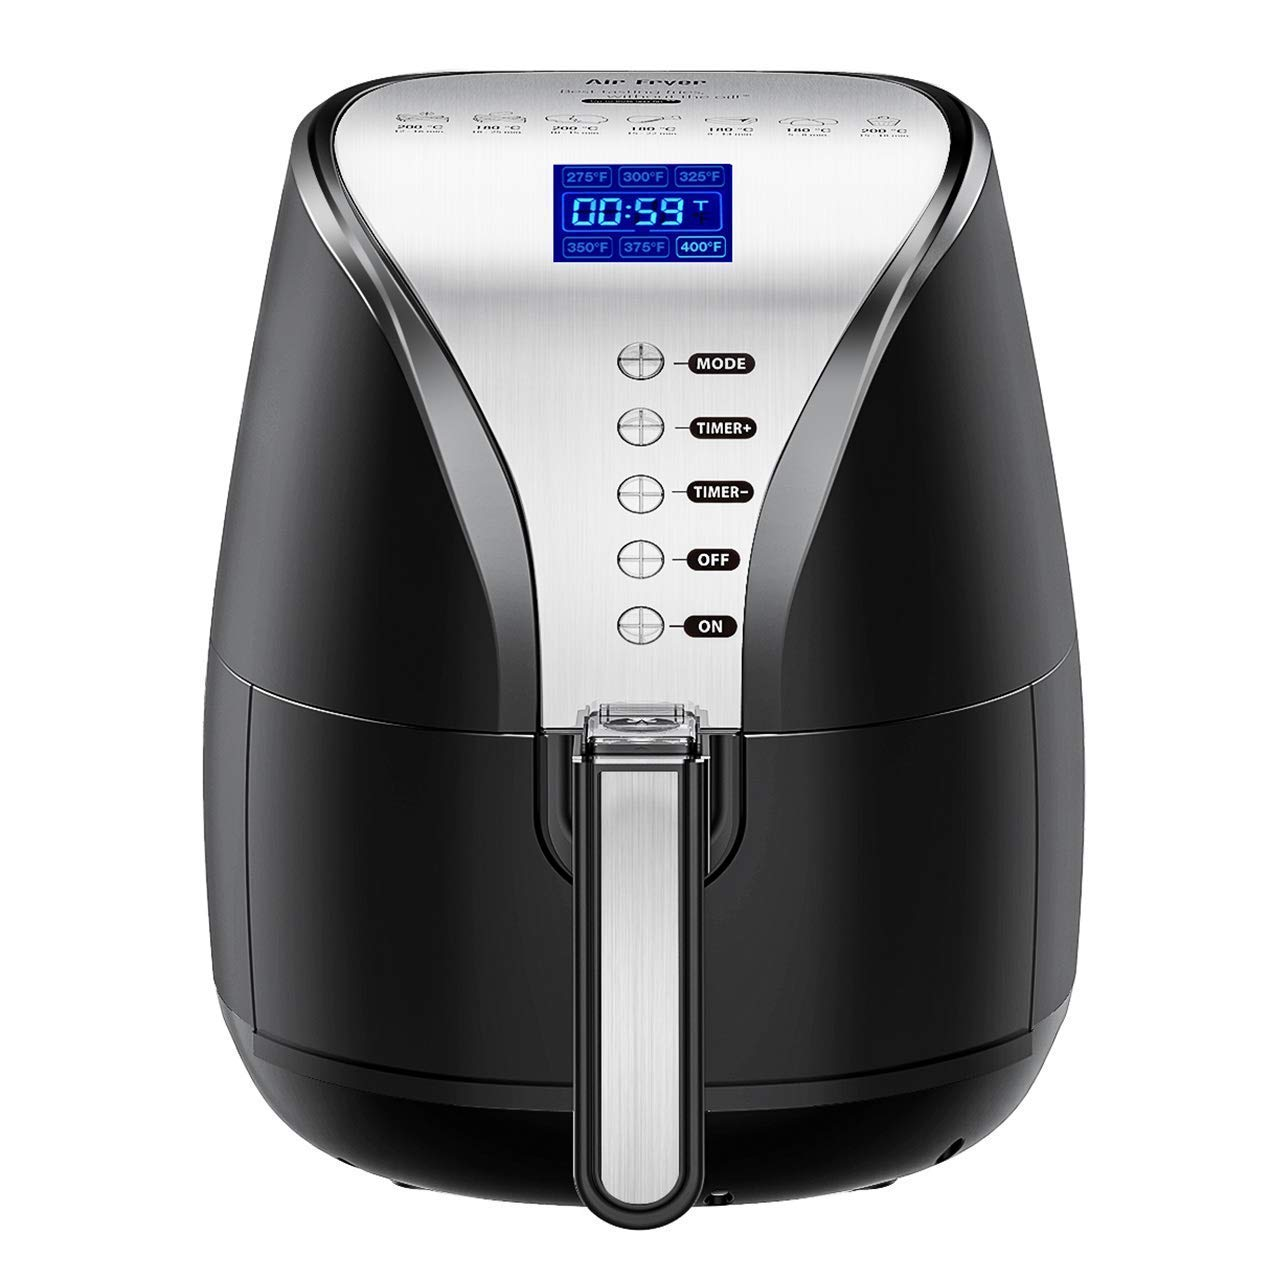 Air Fryer, 4.2 Quart Oilless Hot Air Fryer W Cookbook Oven Larger Cooker, Auto Off, Nonstick Basket, Dishwasher Safe, LCD Screen Convenient Buttons, BPA Free, 1500W, 2 Years Warranty-095AB